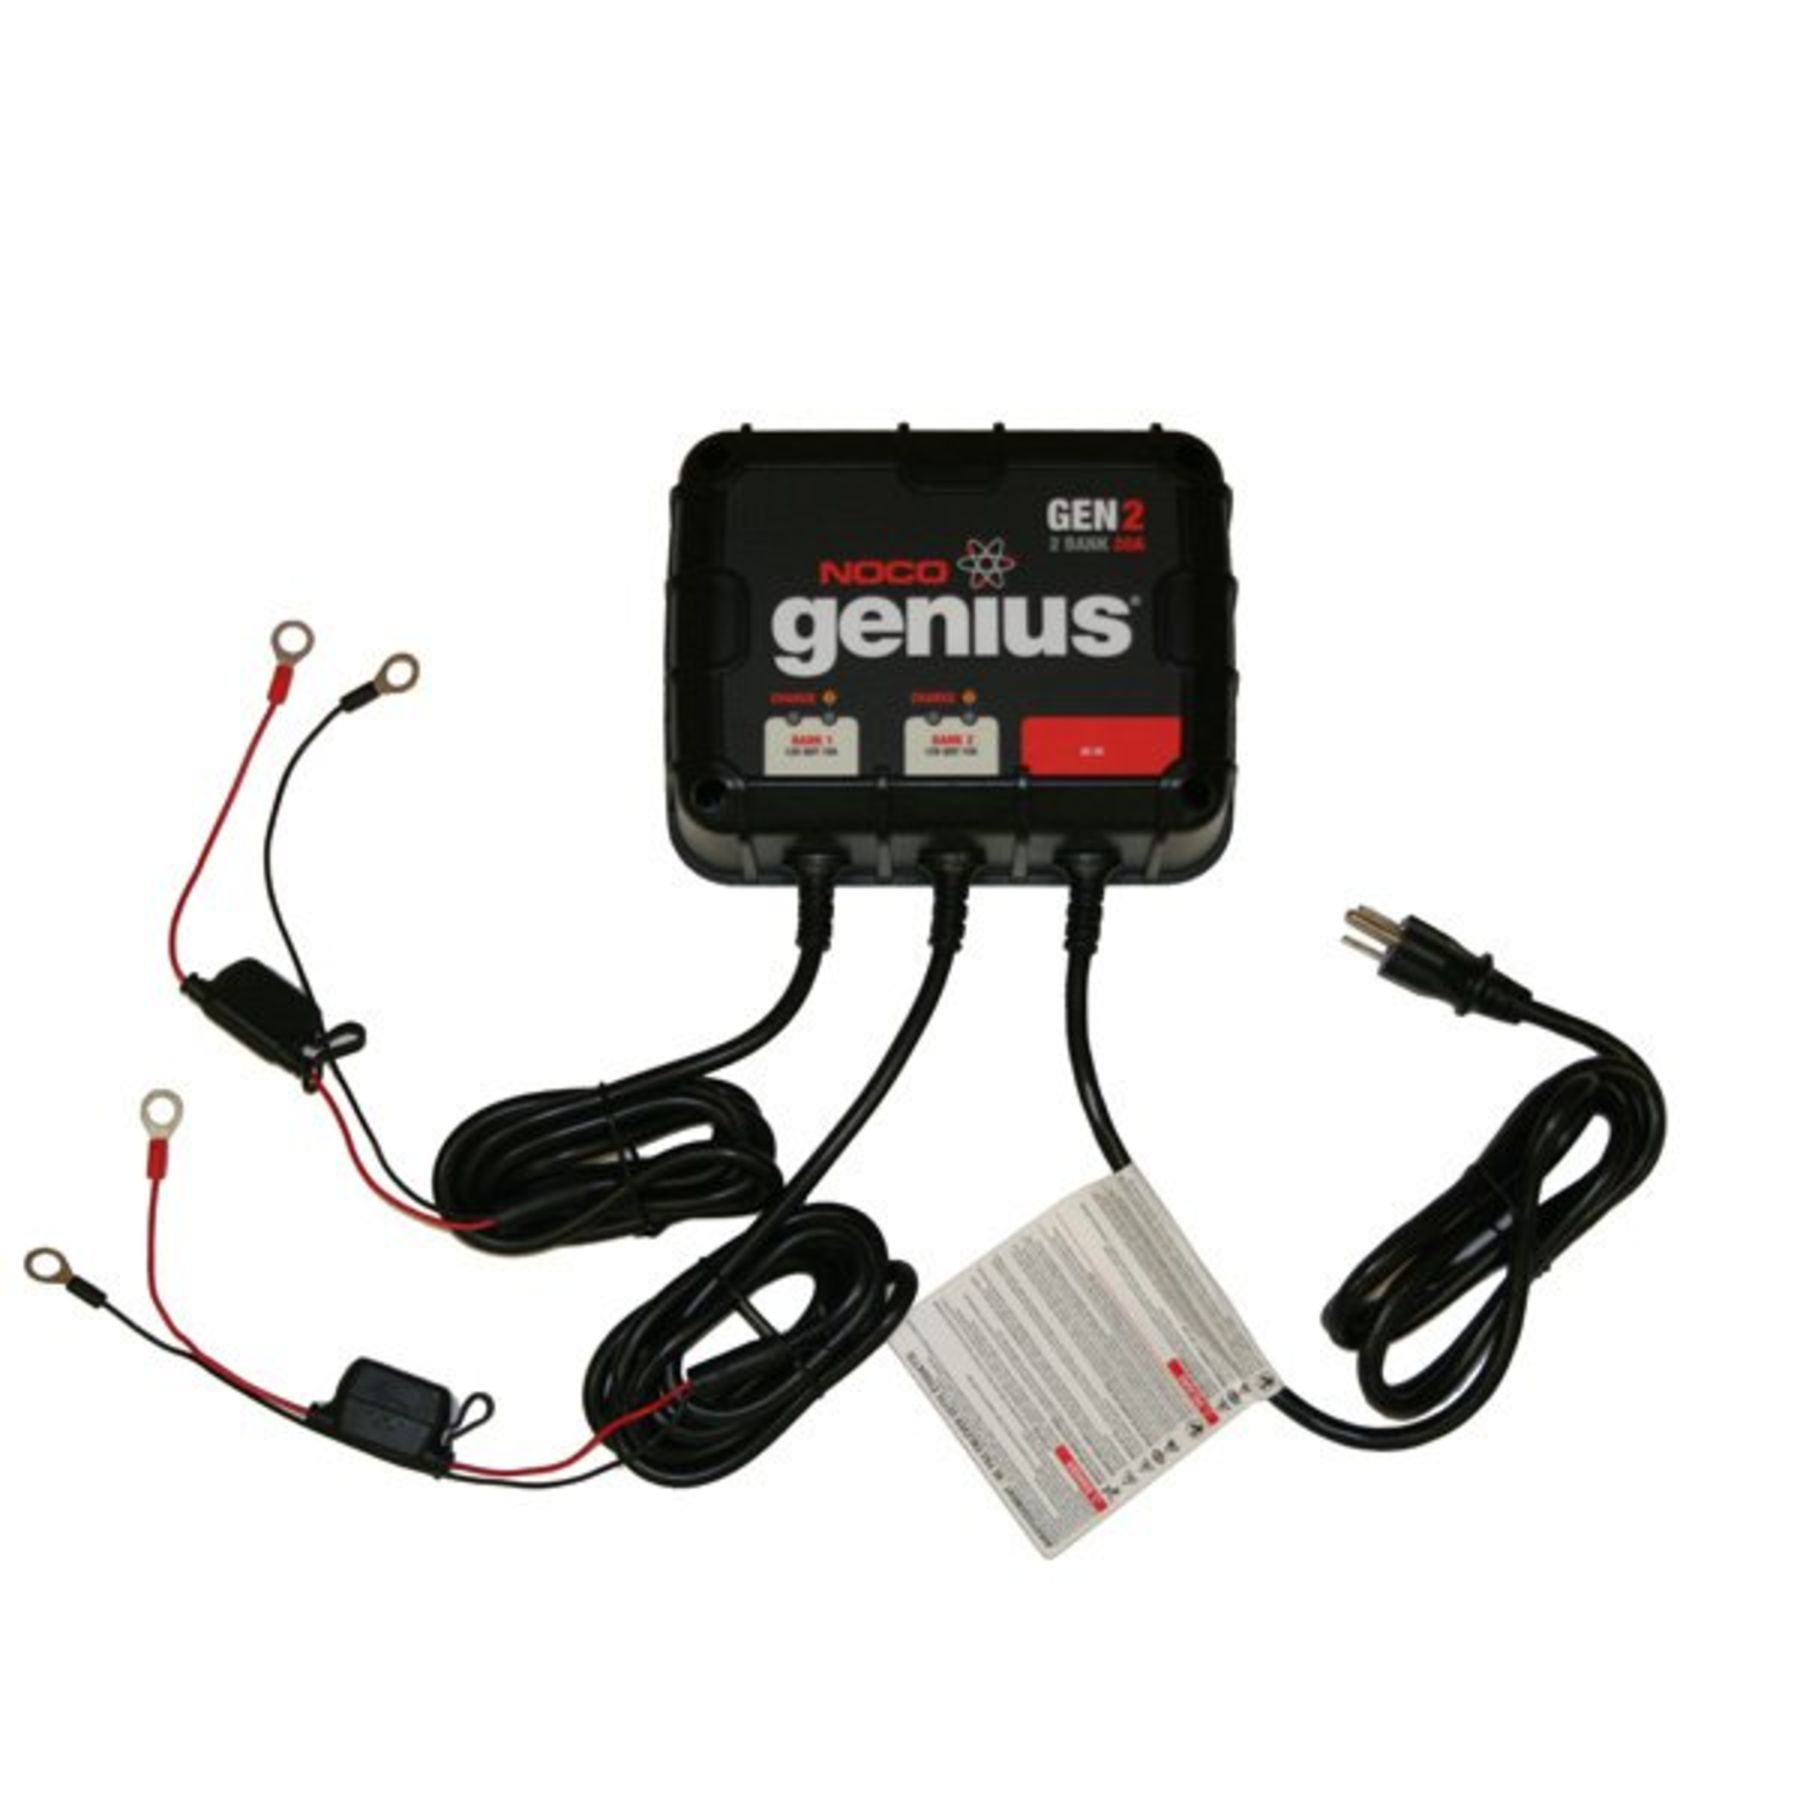 Genius 12 24v 10a X 2 Bank Charger Noco Wiring Diagram